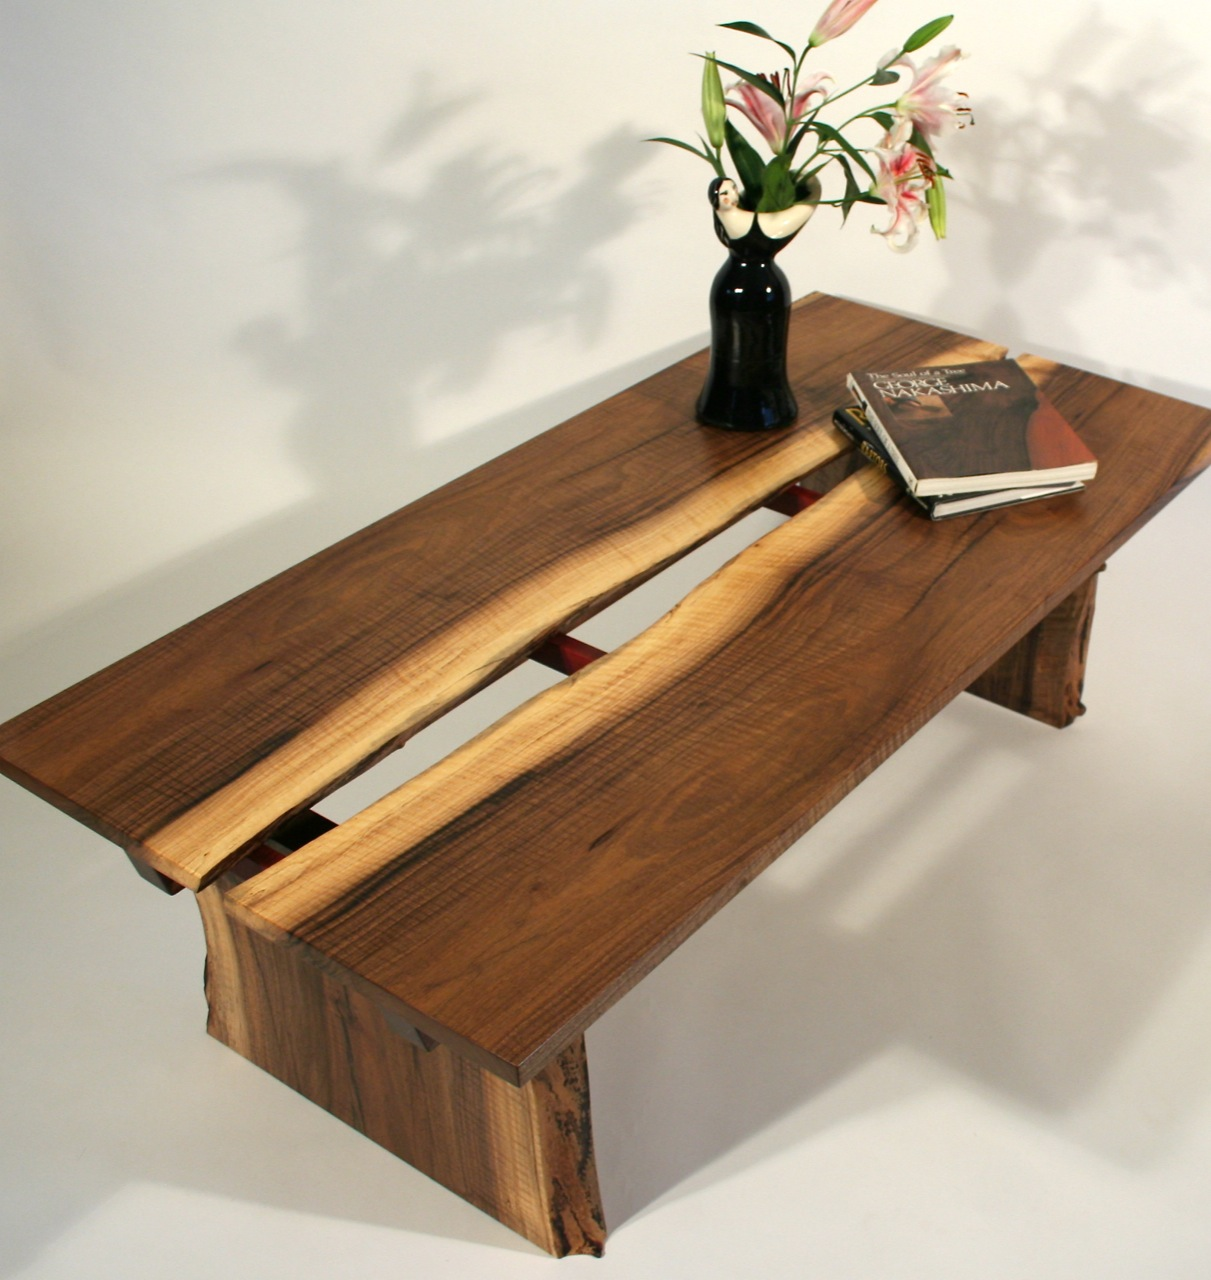 River S Rift Sushi Coffee Table Timothy S Fine Woodworking